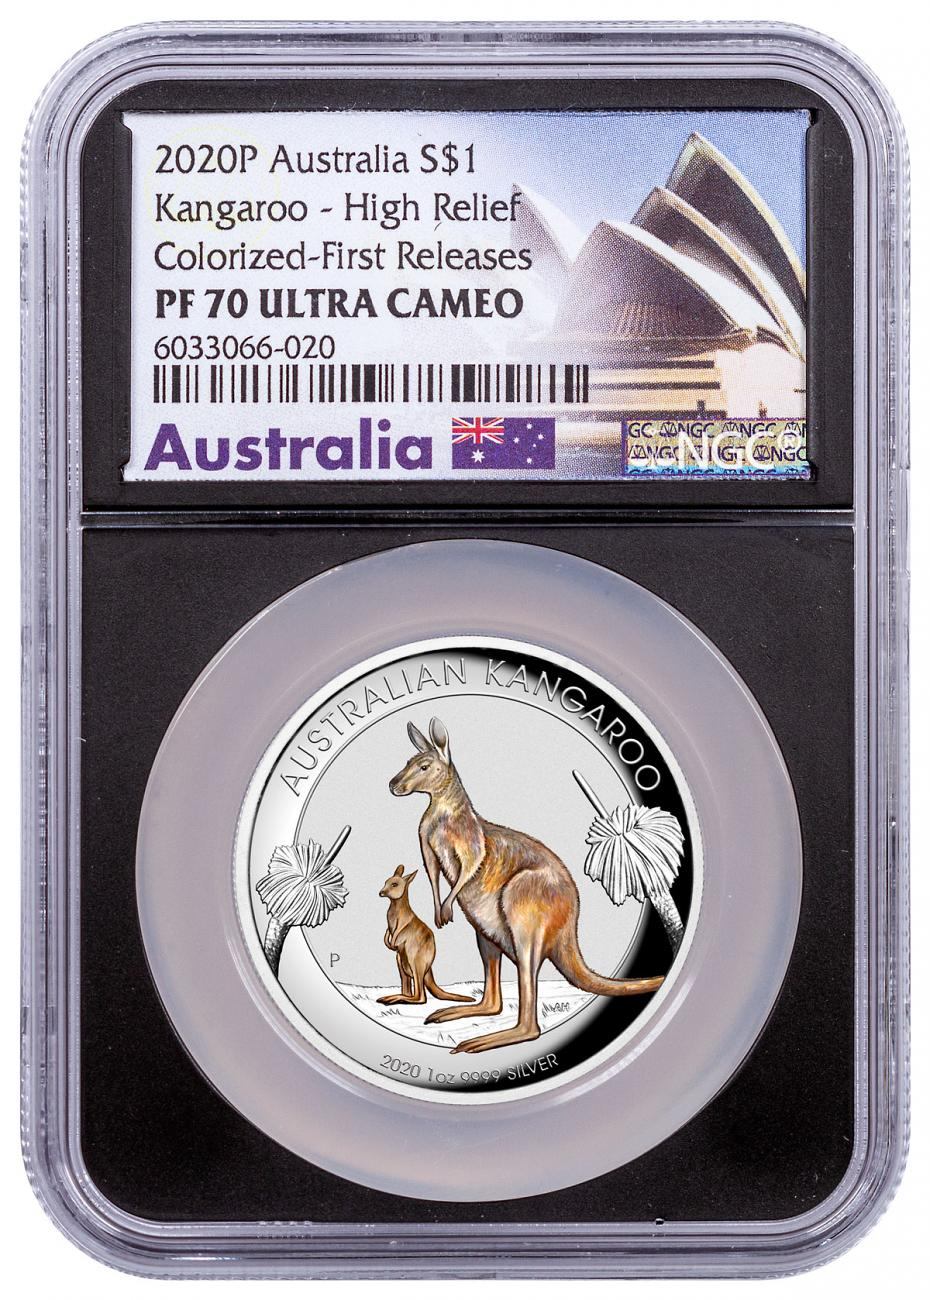 2020-P Australia $1 1 oz Silver Kangaroo Colorized High Relief Proof Coin NGC PF70 UC FR With OGP Black Core Holder Opera House Label